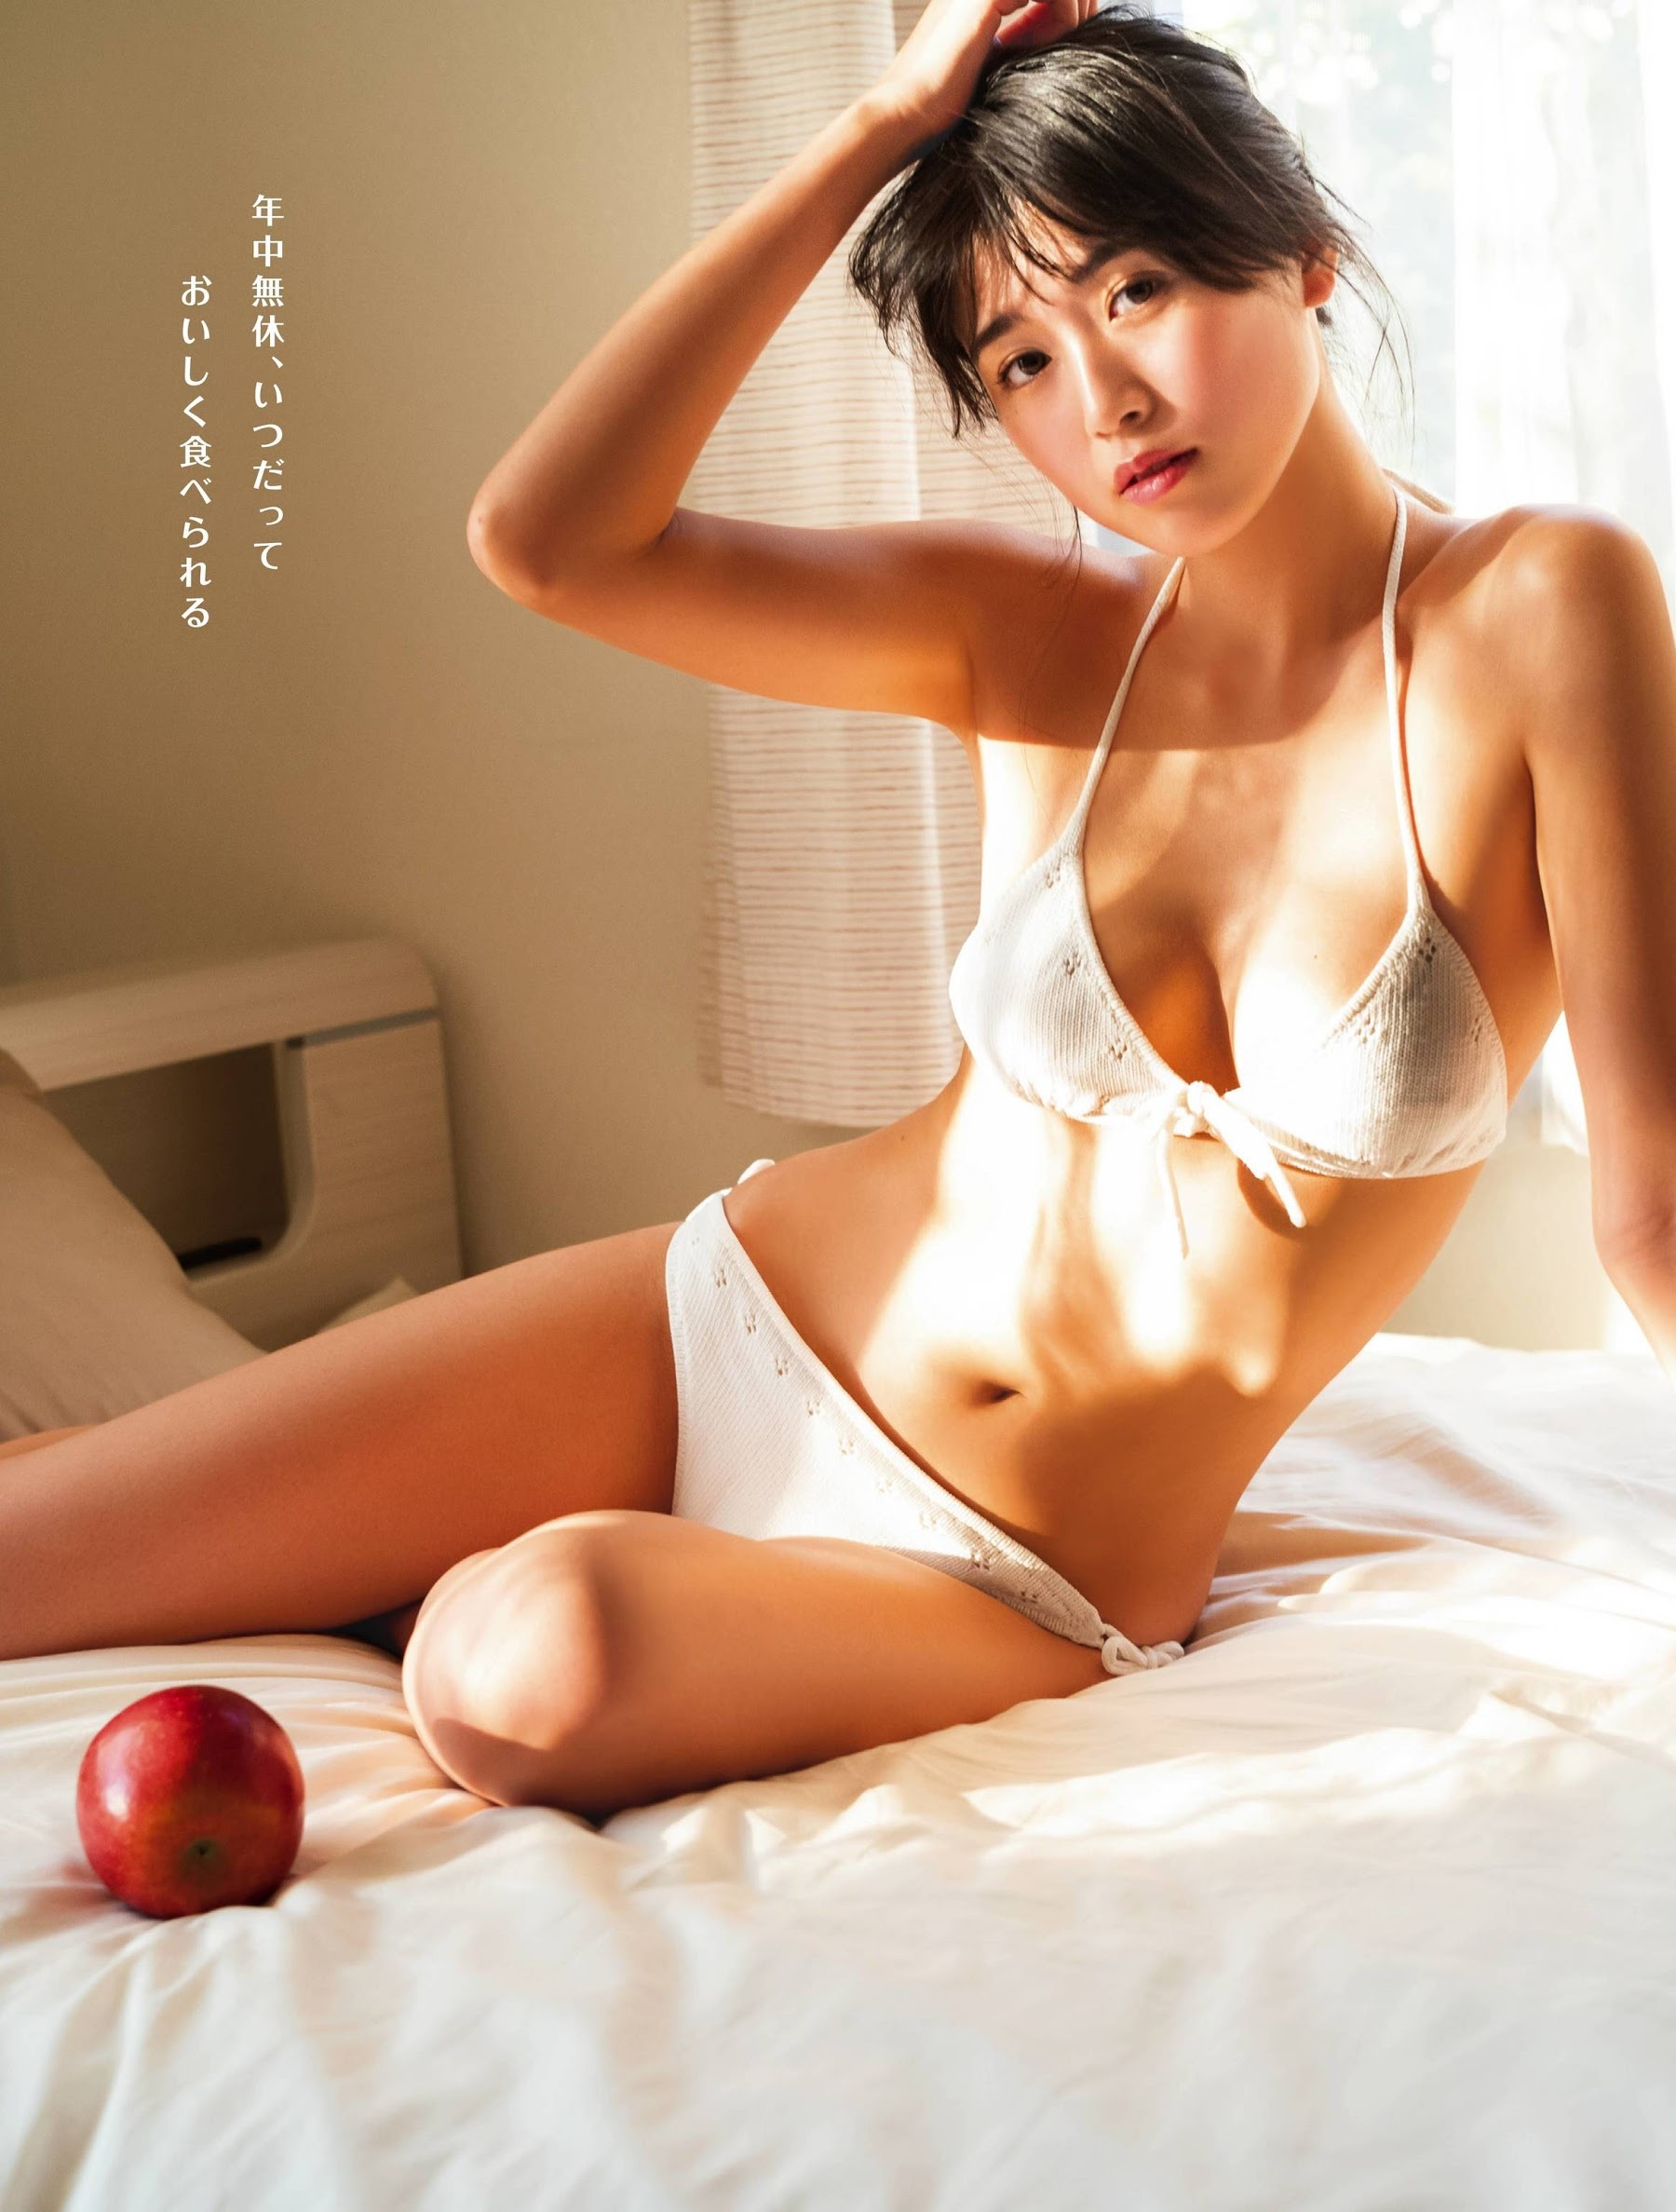 Beautiful Body Girl from Aomori on its wayBe sure to check out the northern hemisphere009